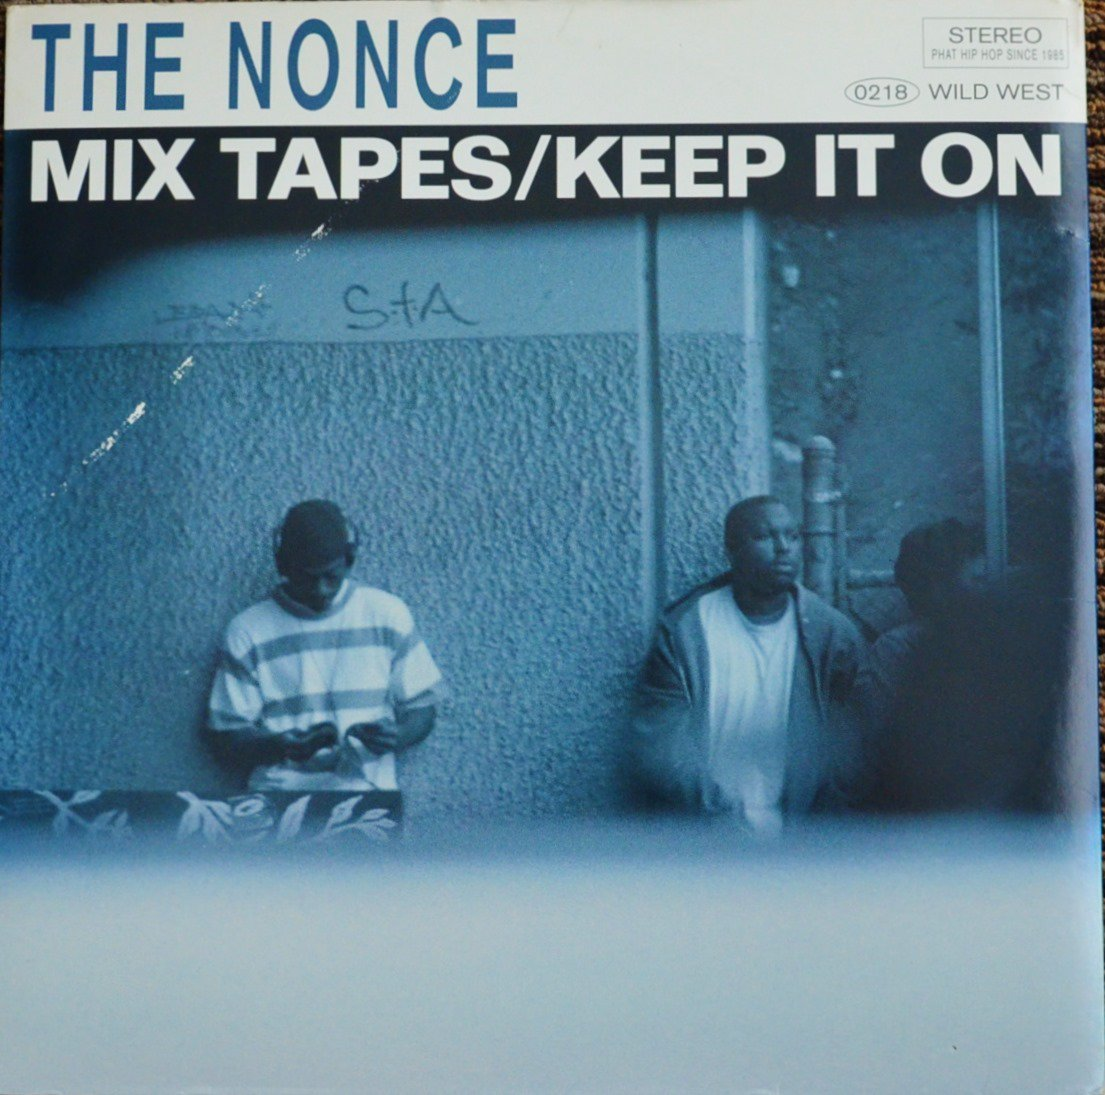 THE NONCE / MIX TAPES / KEEP IT ON / EIGHTY FIVE (12